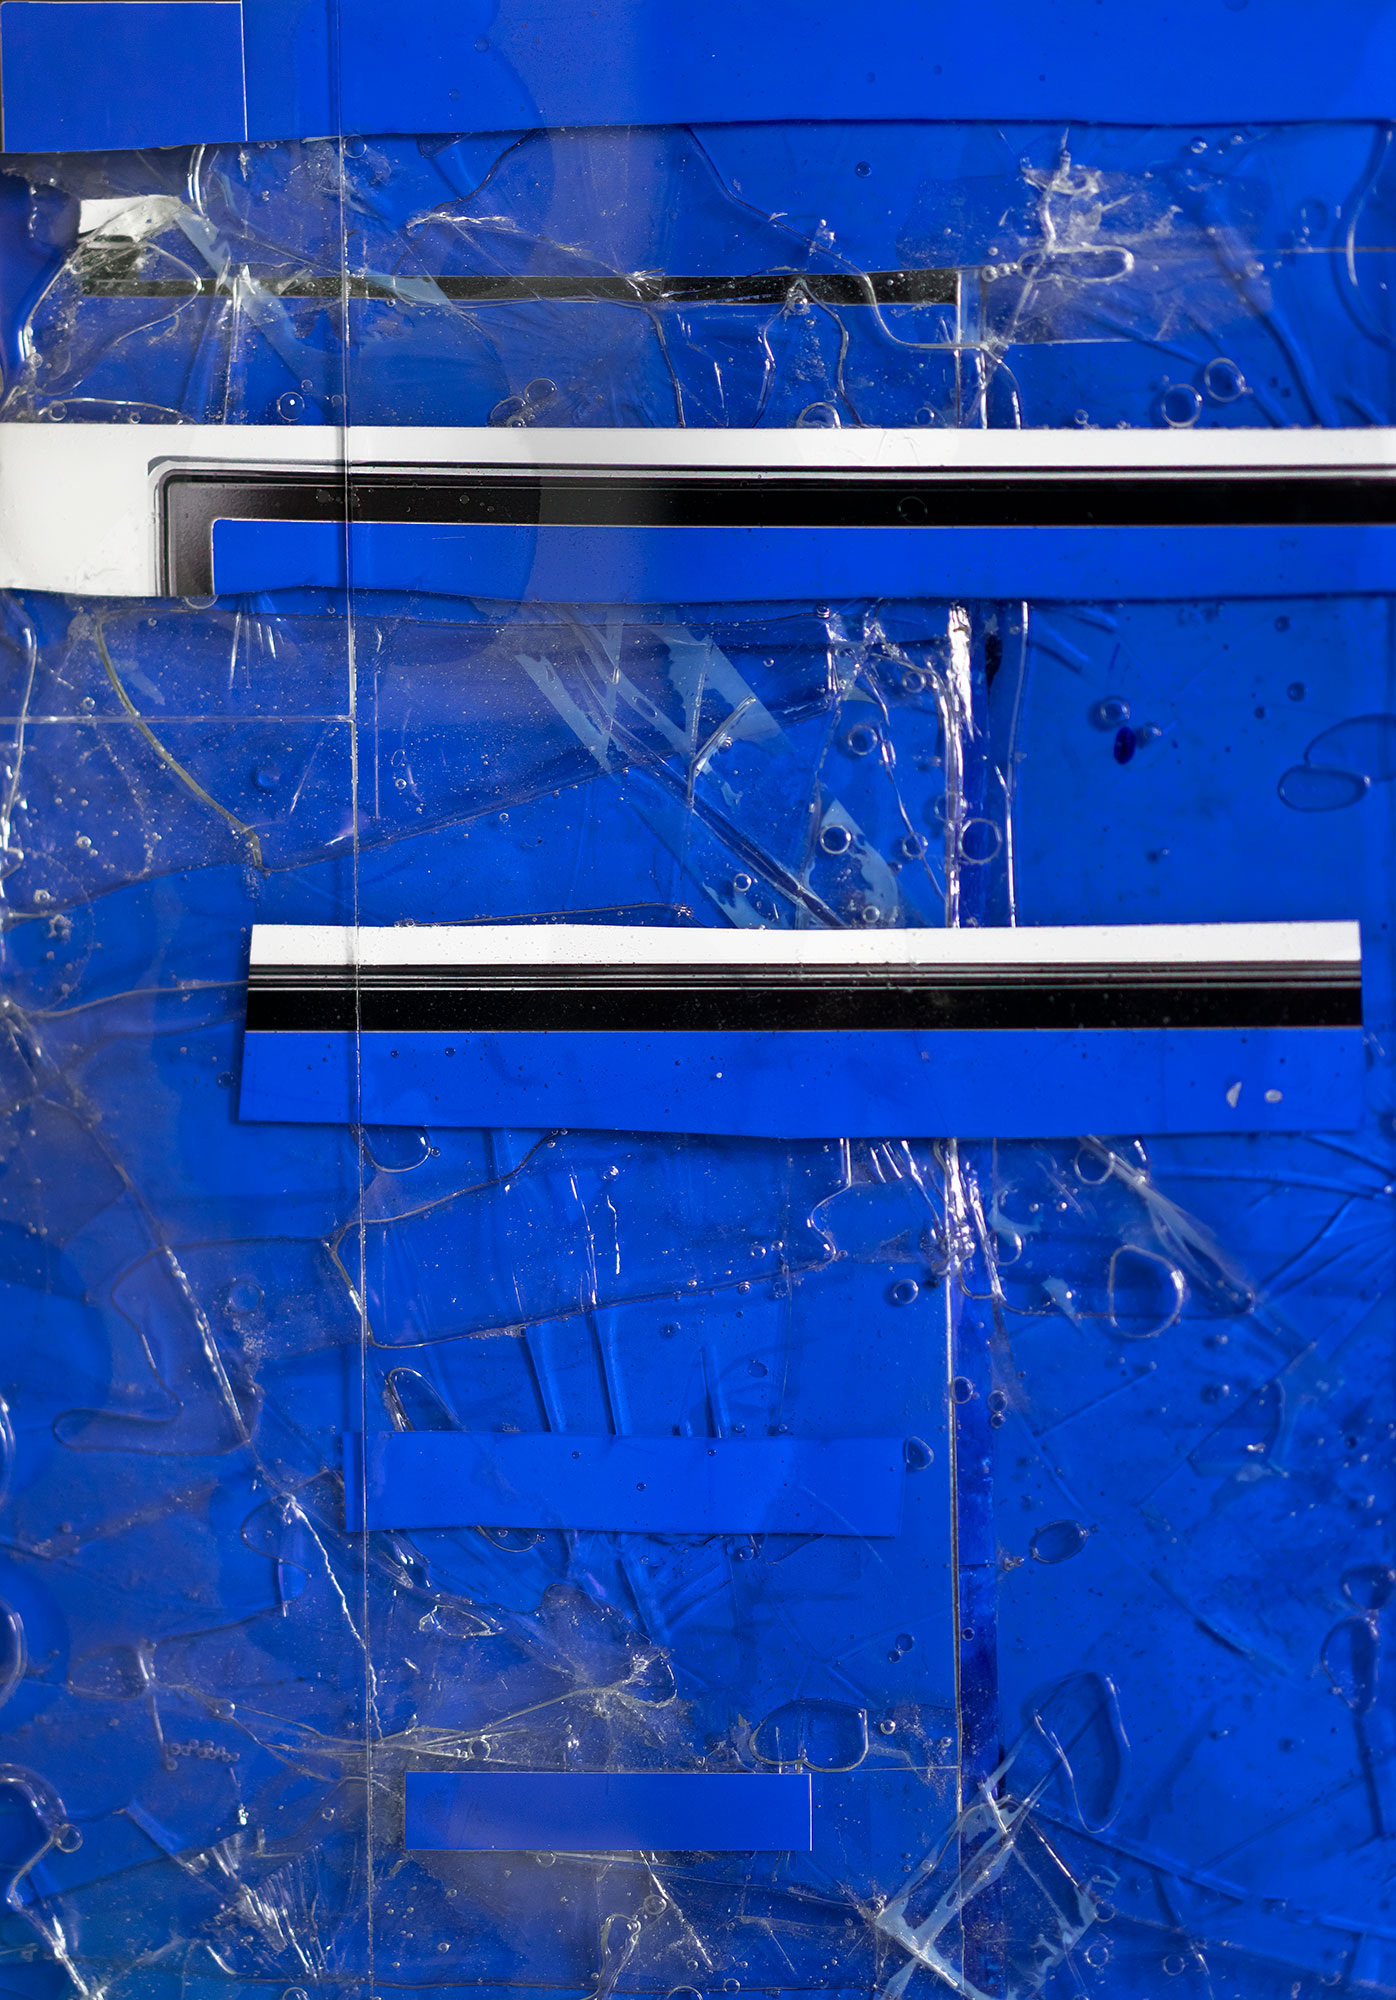 Steel/Glass 31 (Blue Screen) - 36 x 48 inches, 2015. Detail I